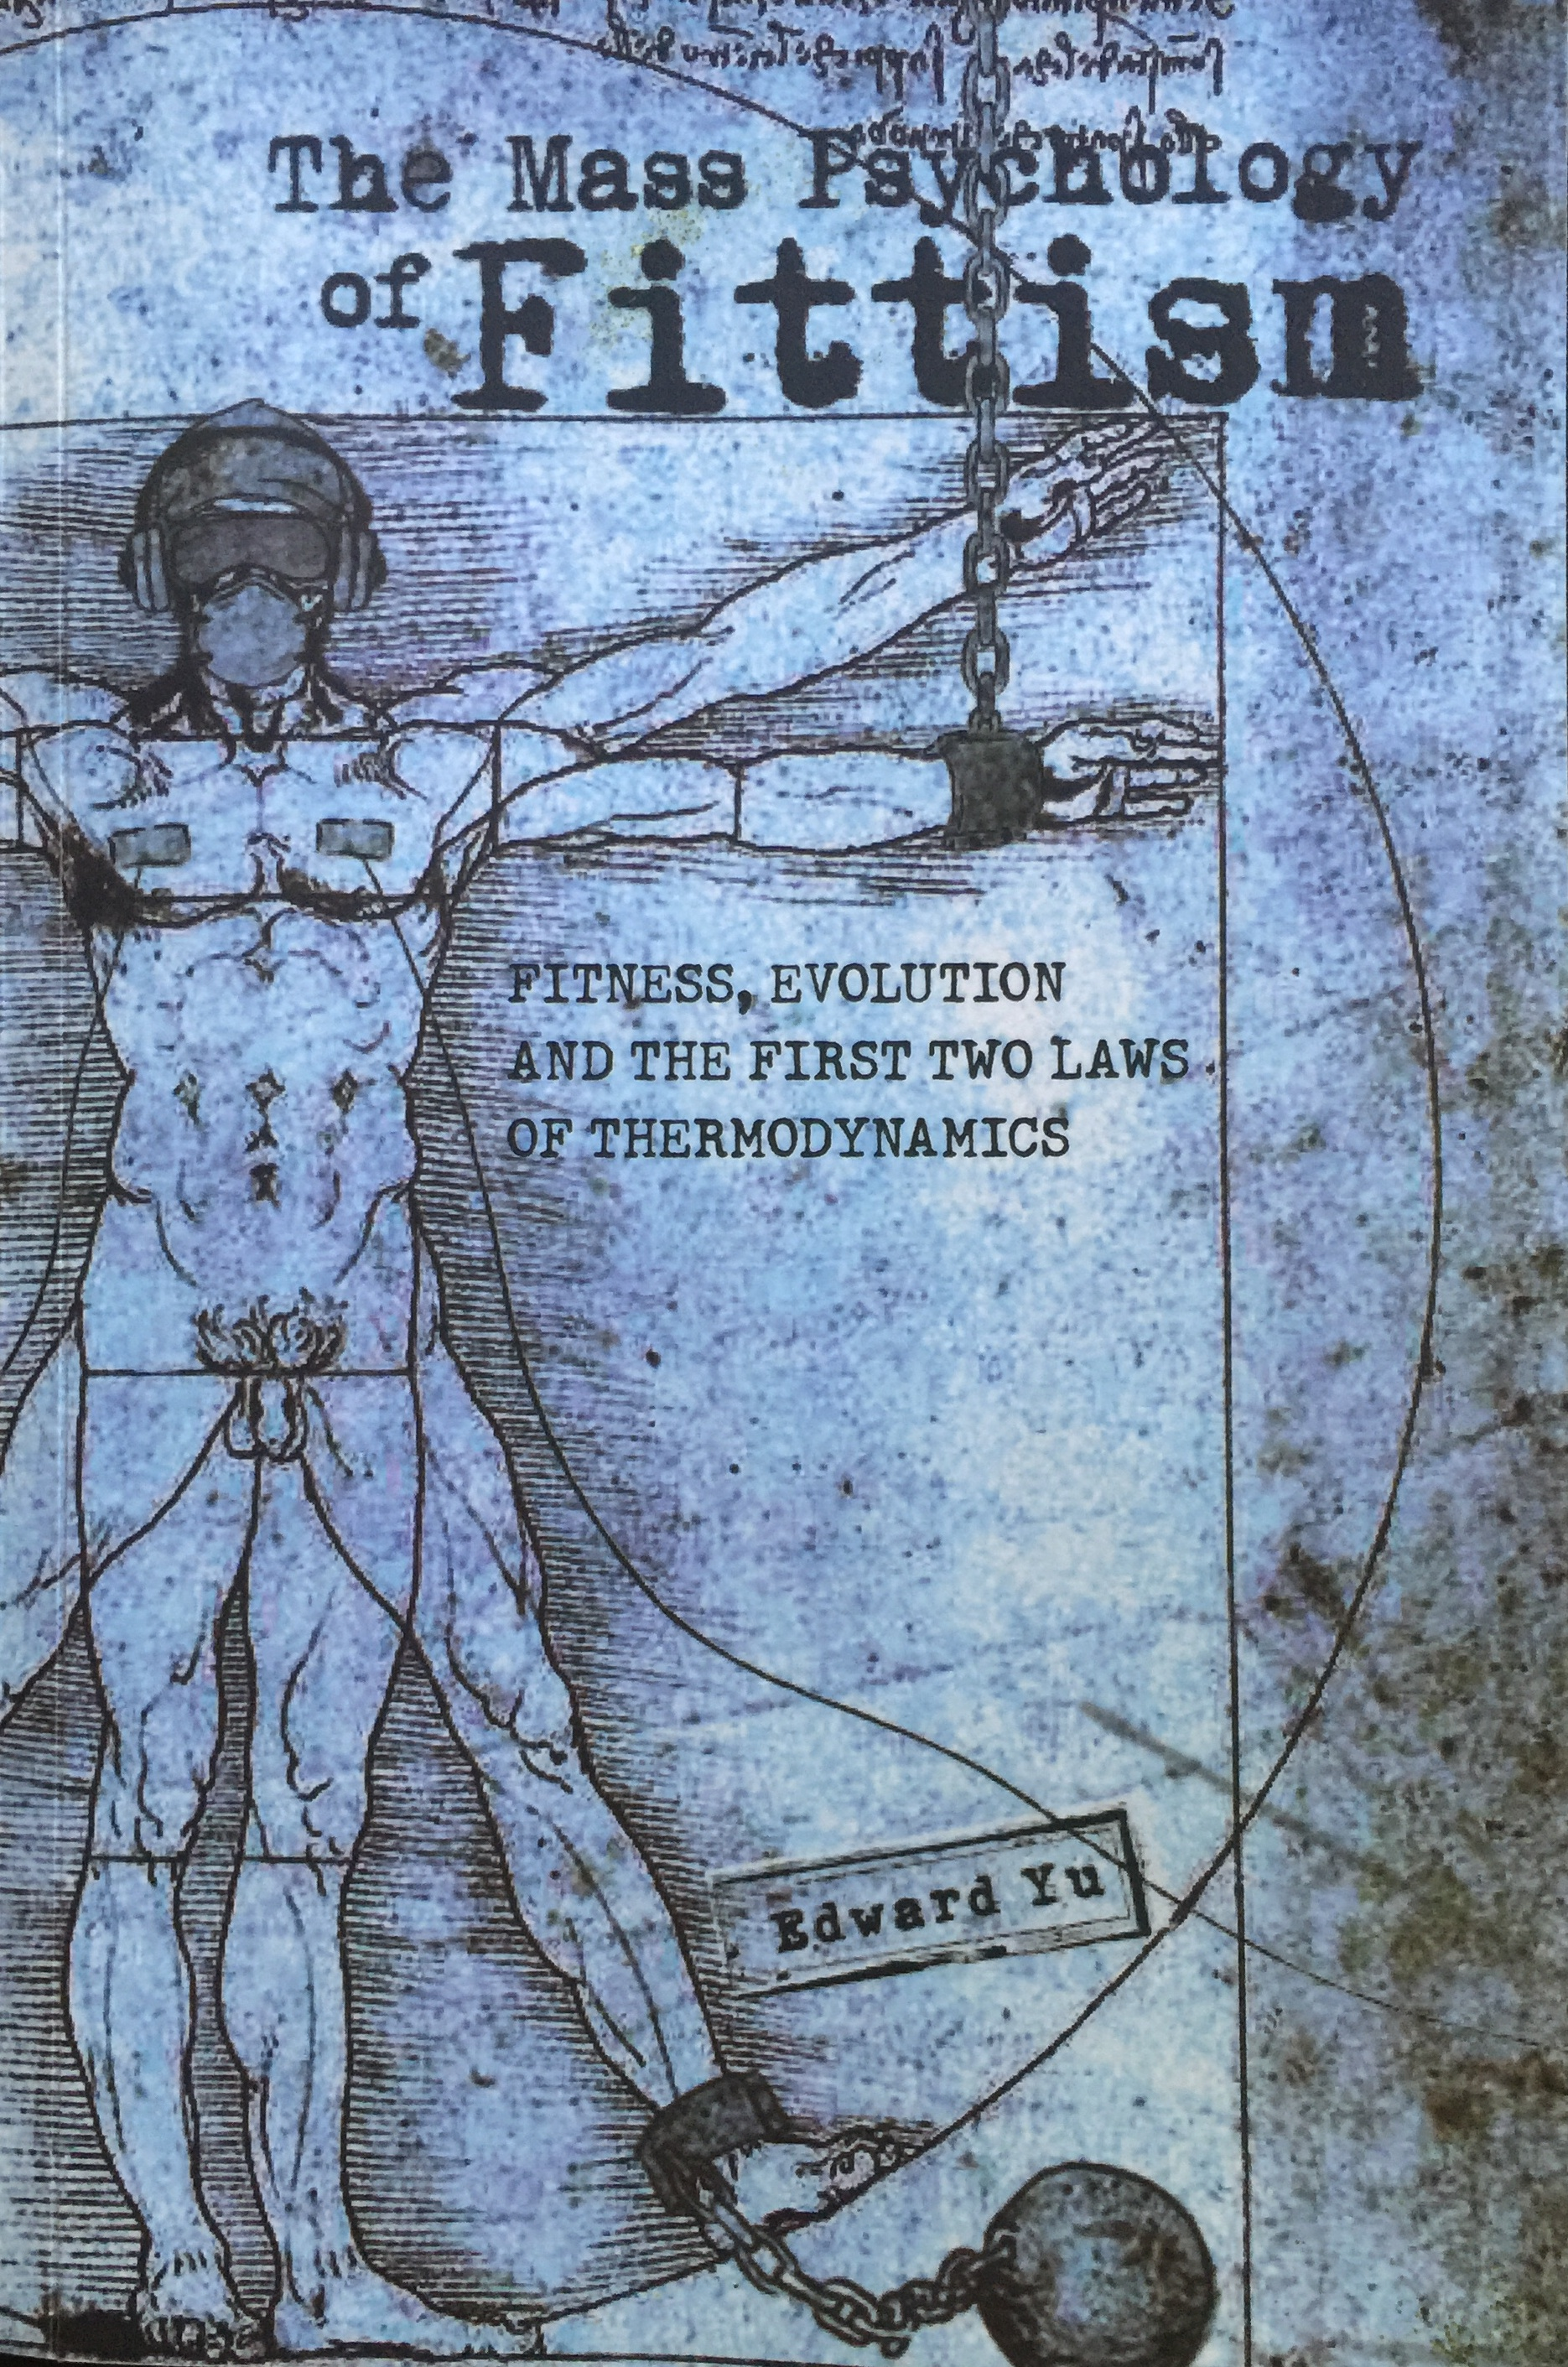 Image shows cover of Mass Psychology of Fittism: Michaelangelo's depiction of human strength